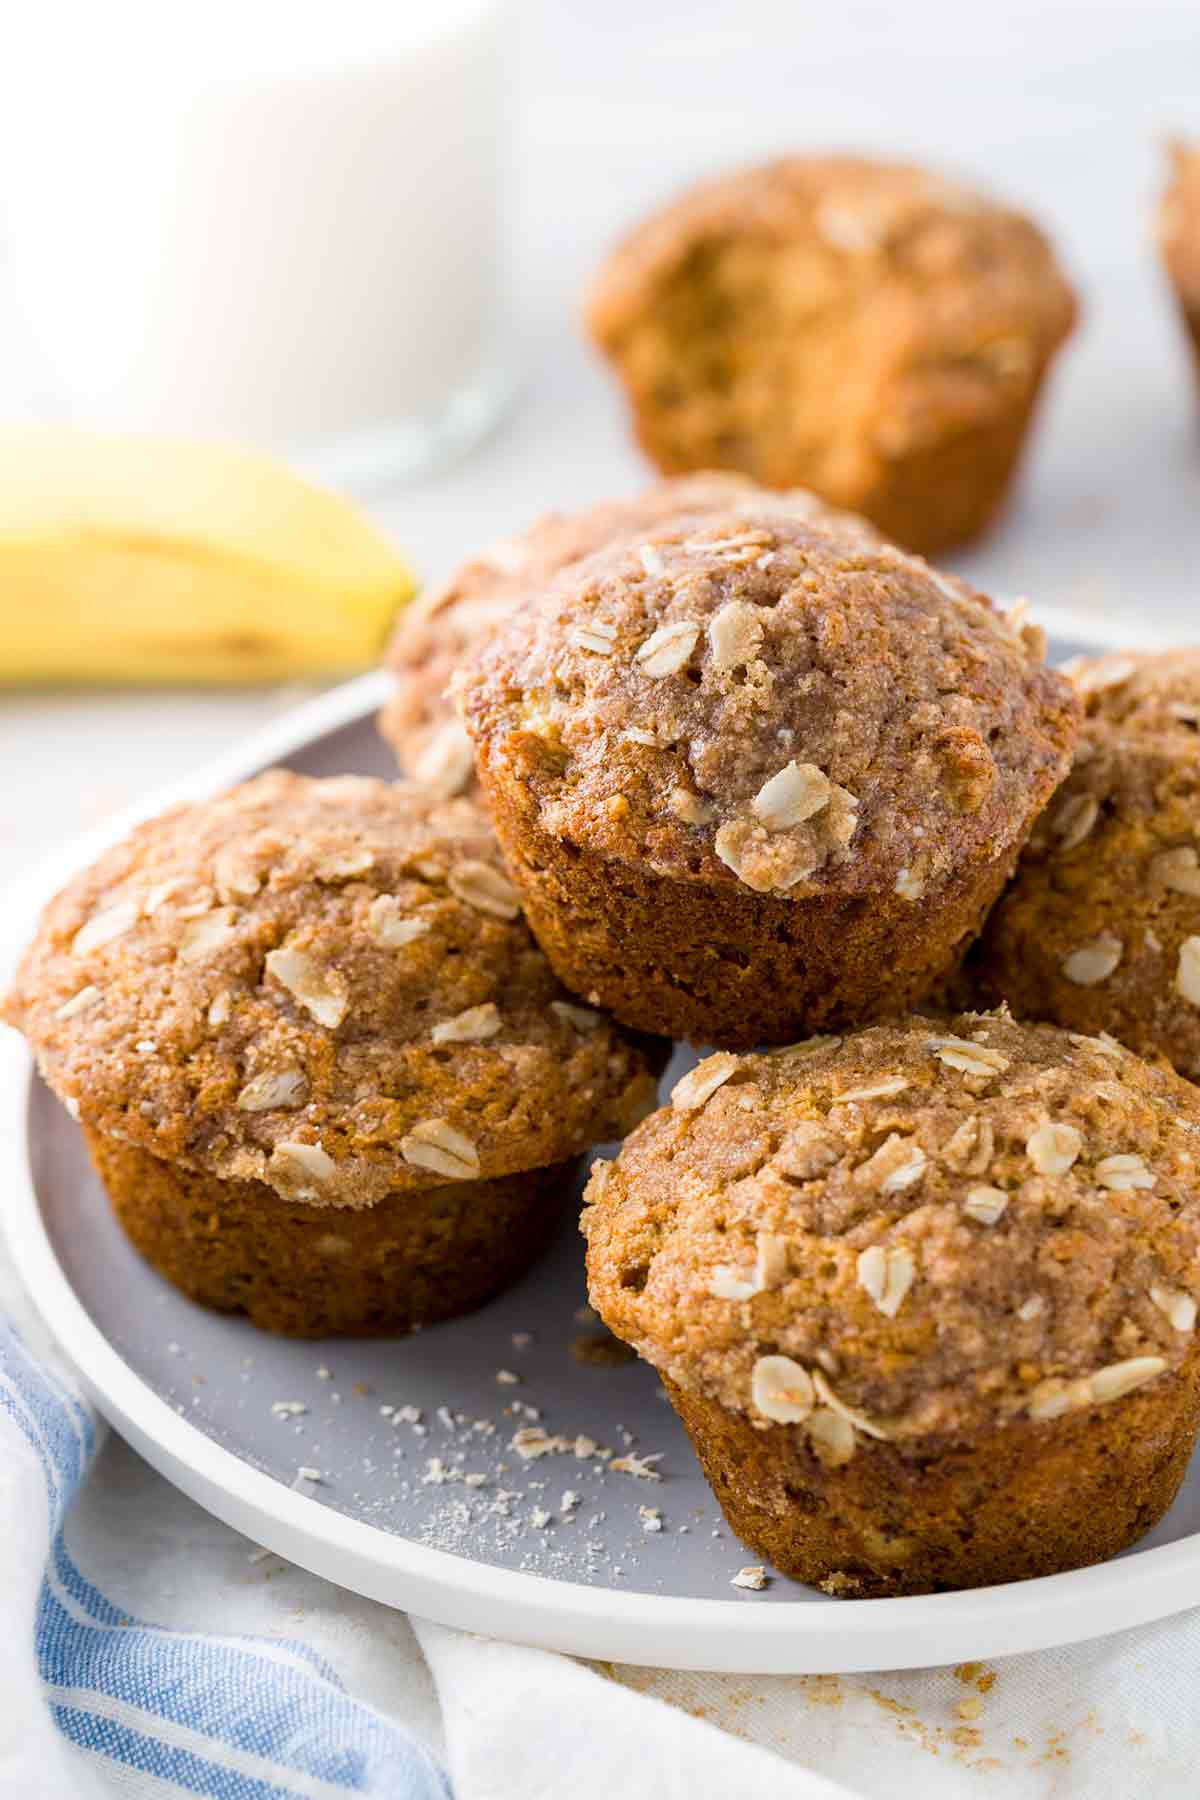 Healthy Banana Muffin Recipes  Healthy Banana Muffins with Old Fashioned Oats